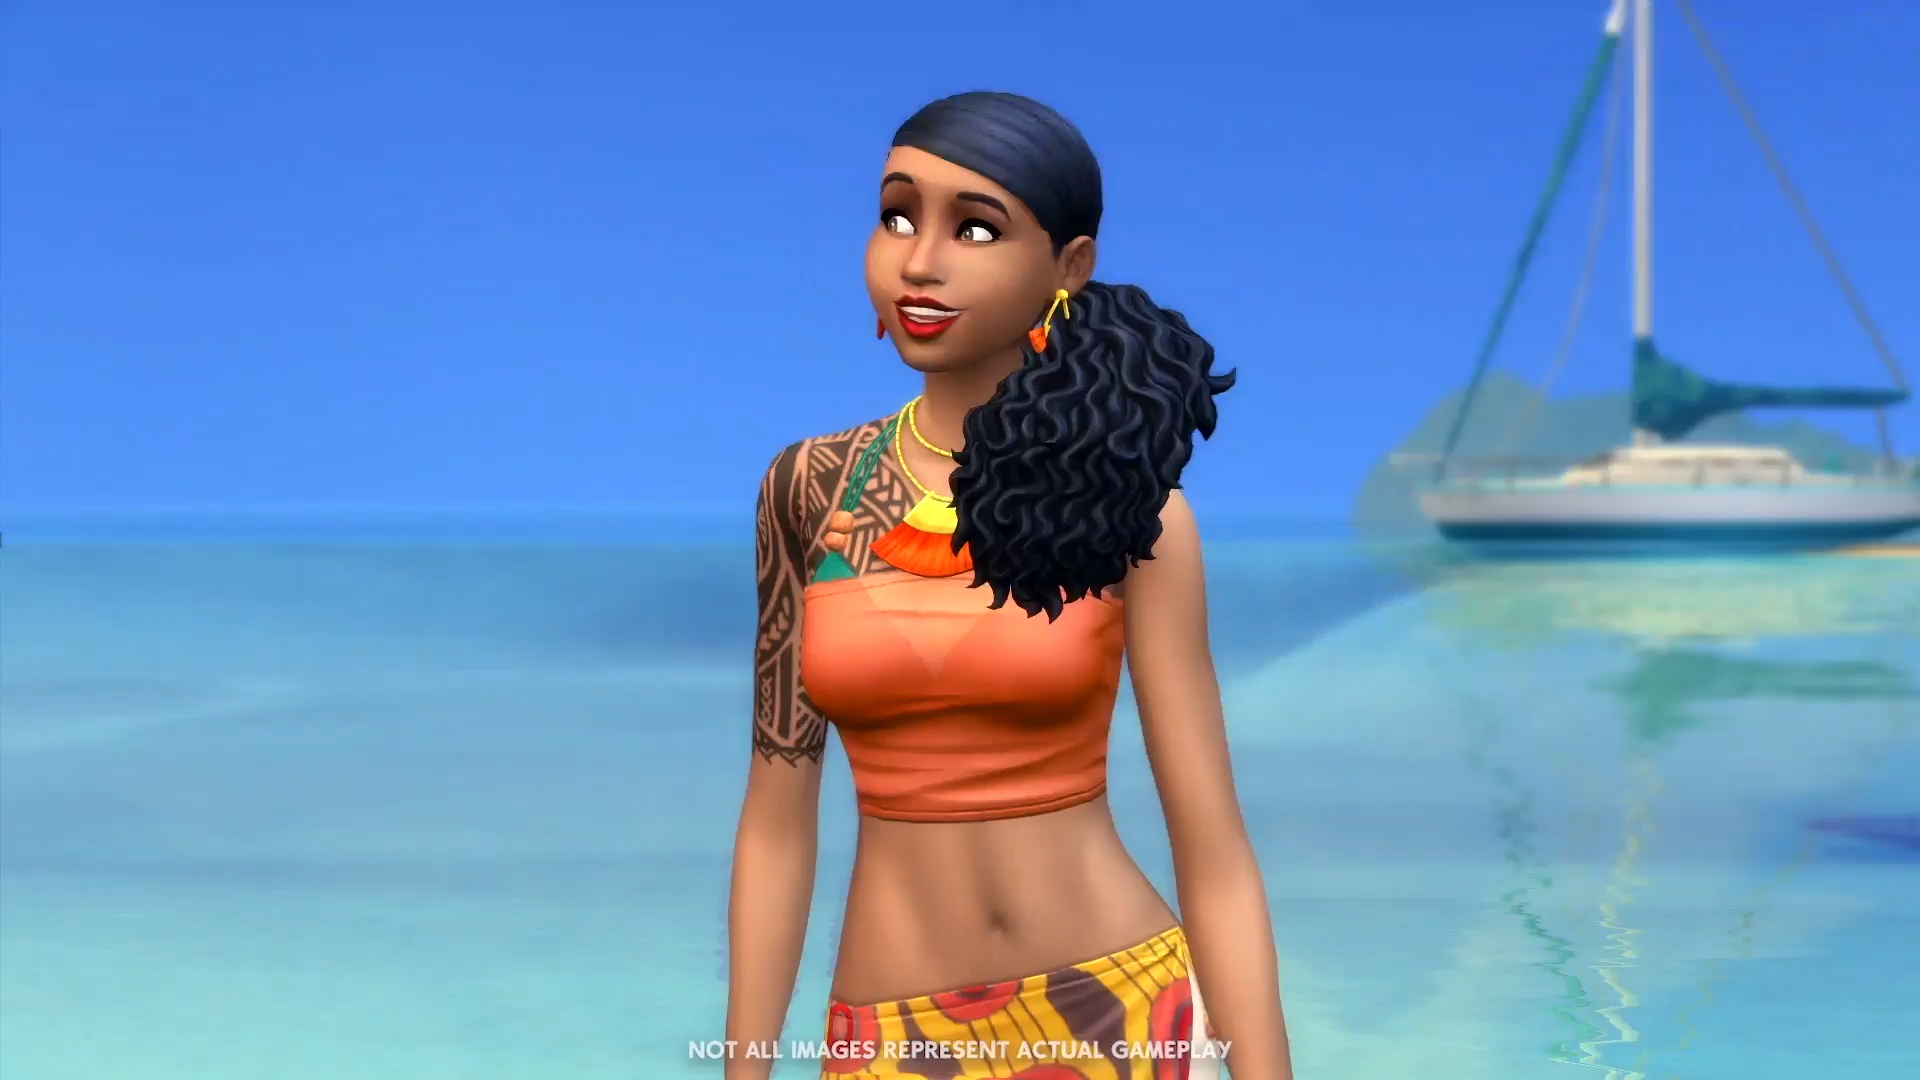 The Sims 4 Island Living takes your sims to the beach, where